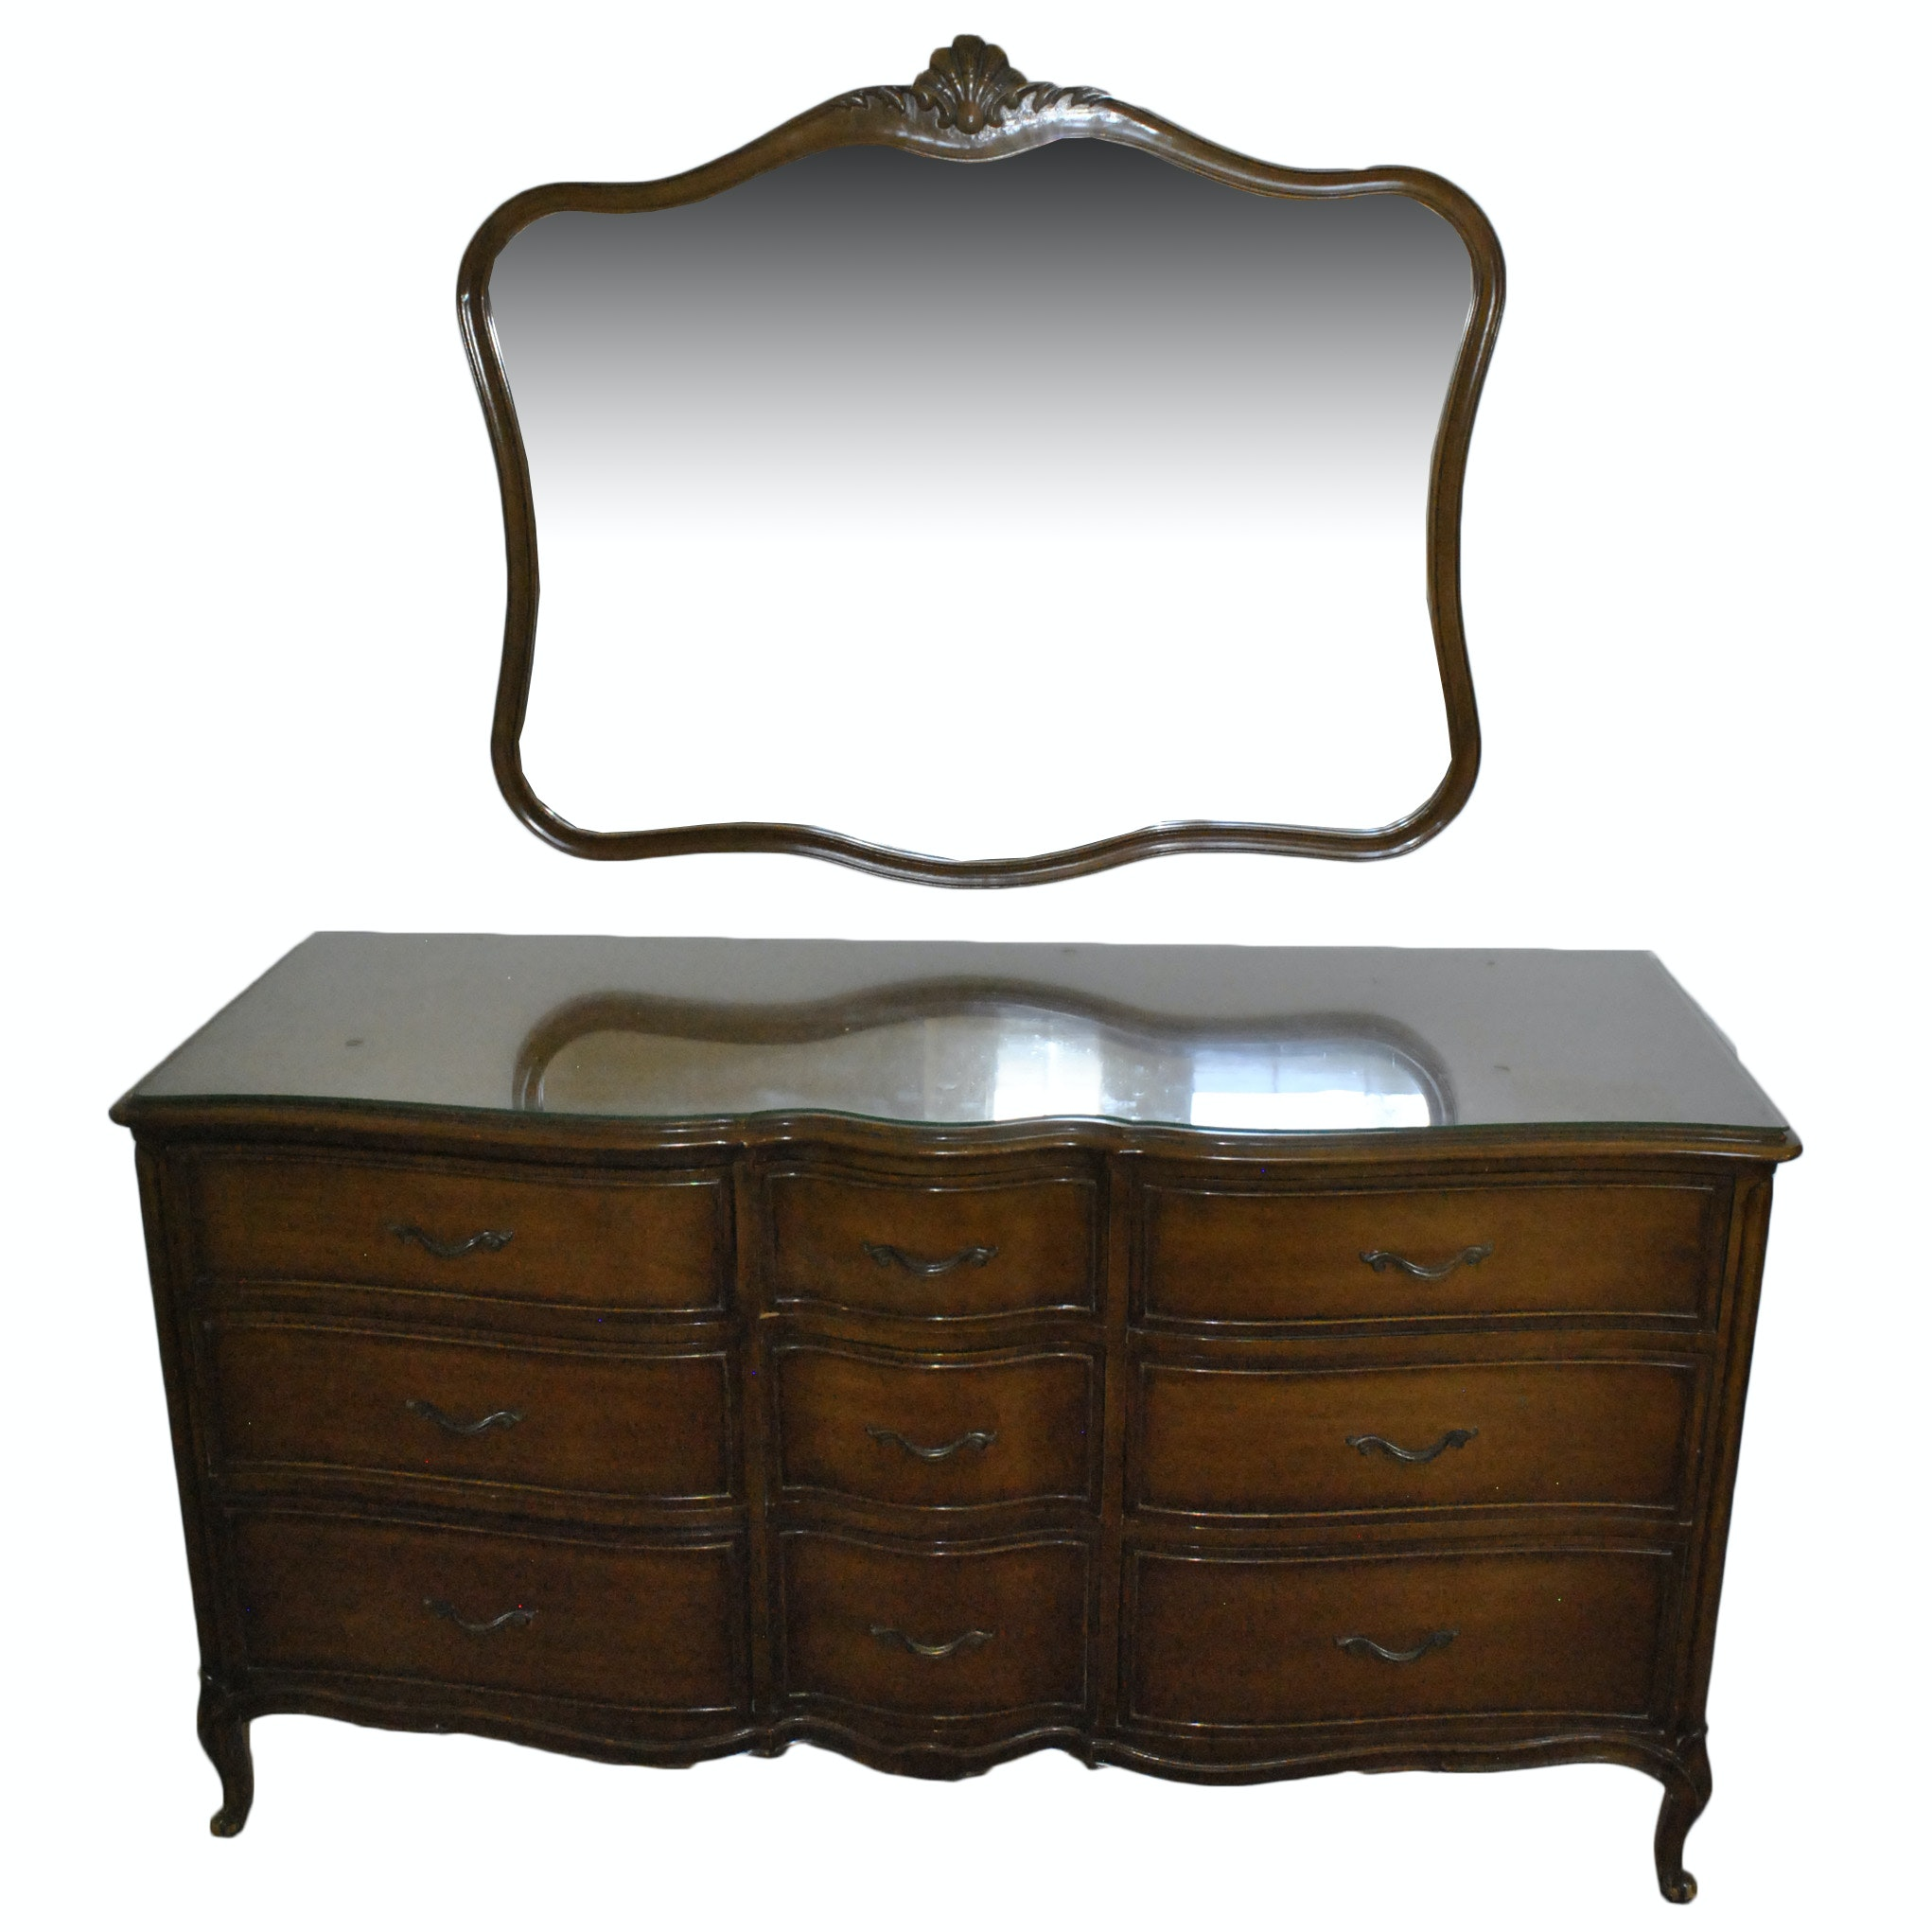 French Provincial Style Dresser by Drexel